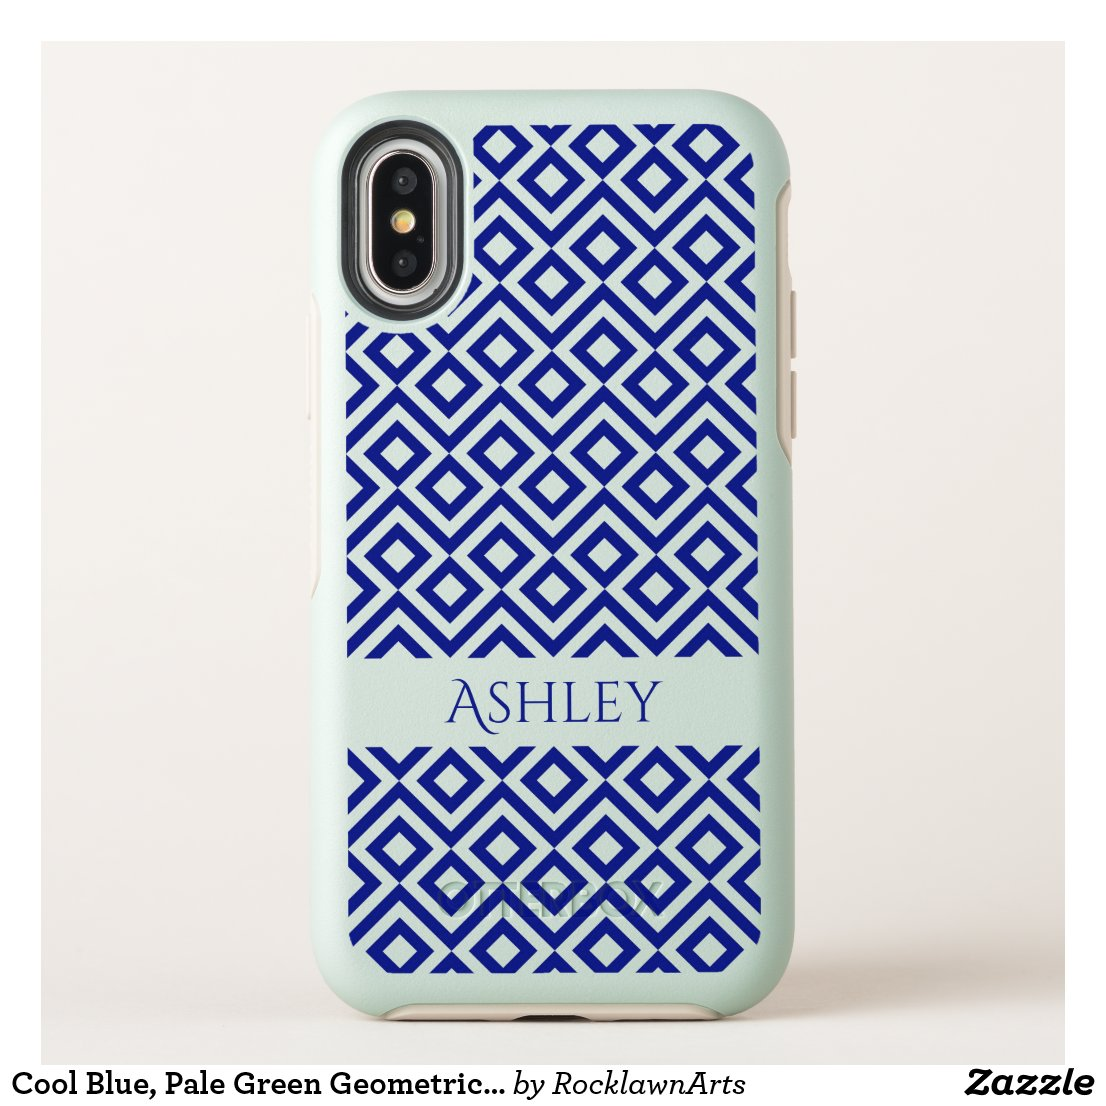 Cool Blue, Pale Green Geometric Meander, Your Name OtterBox Symmetry iPhone X Case